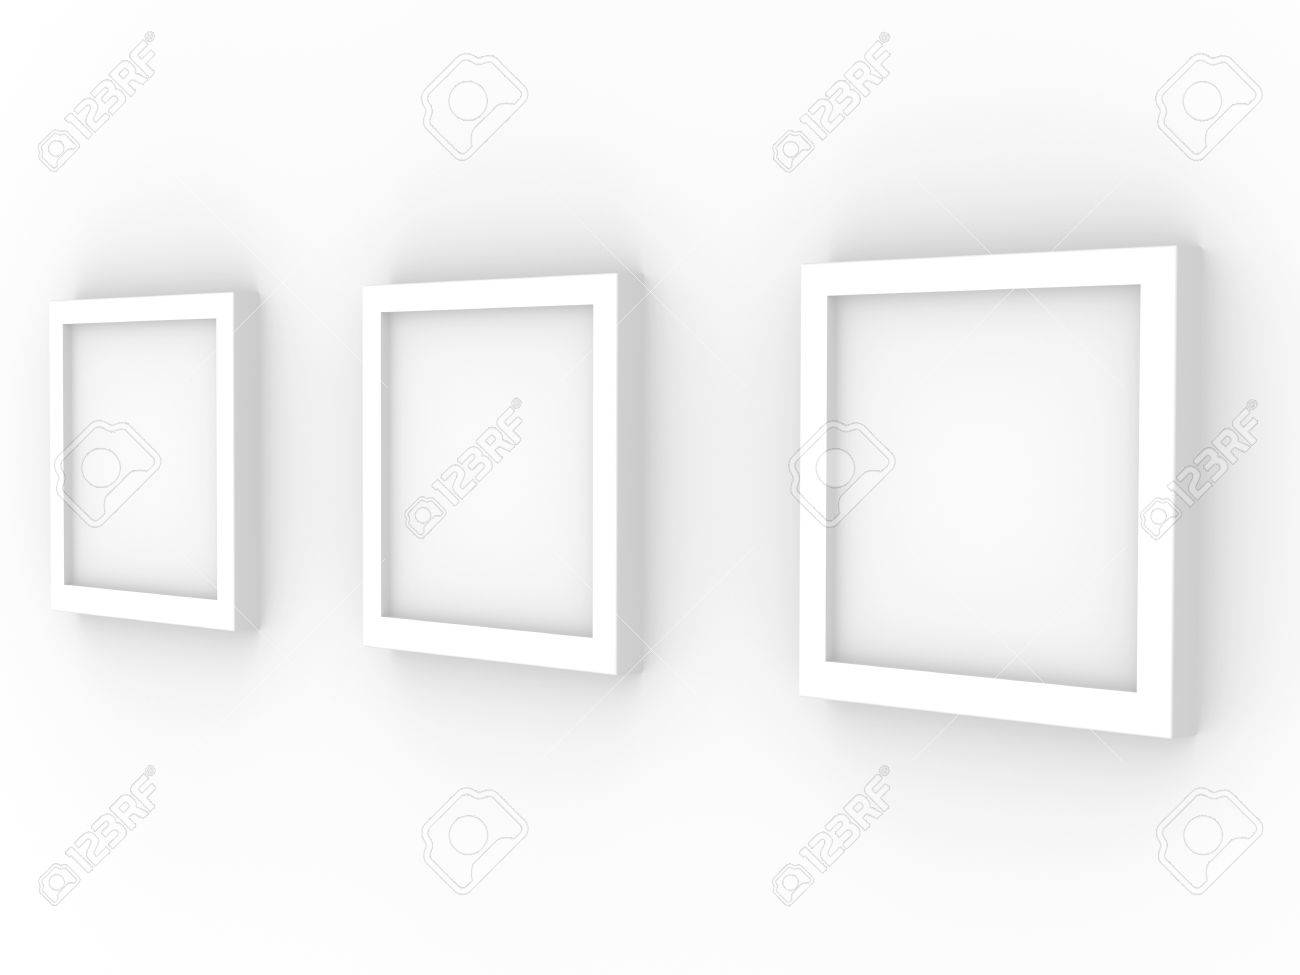 White Wall Frames 3d picture frames on a white wall stock photo, picture and royalty